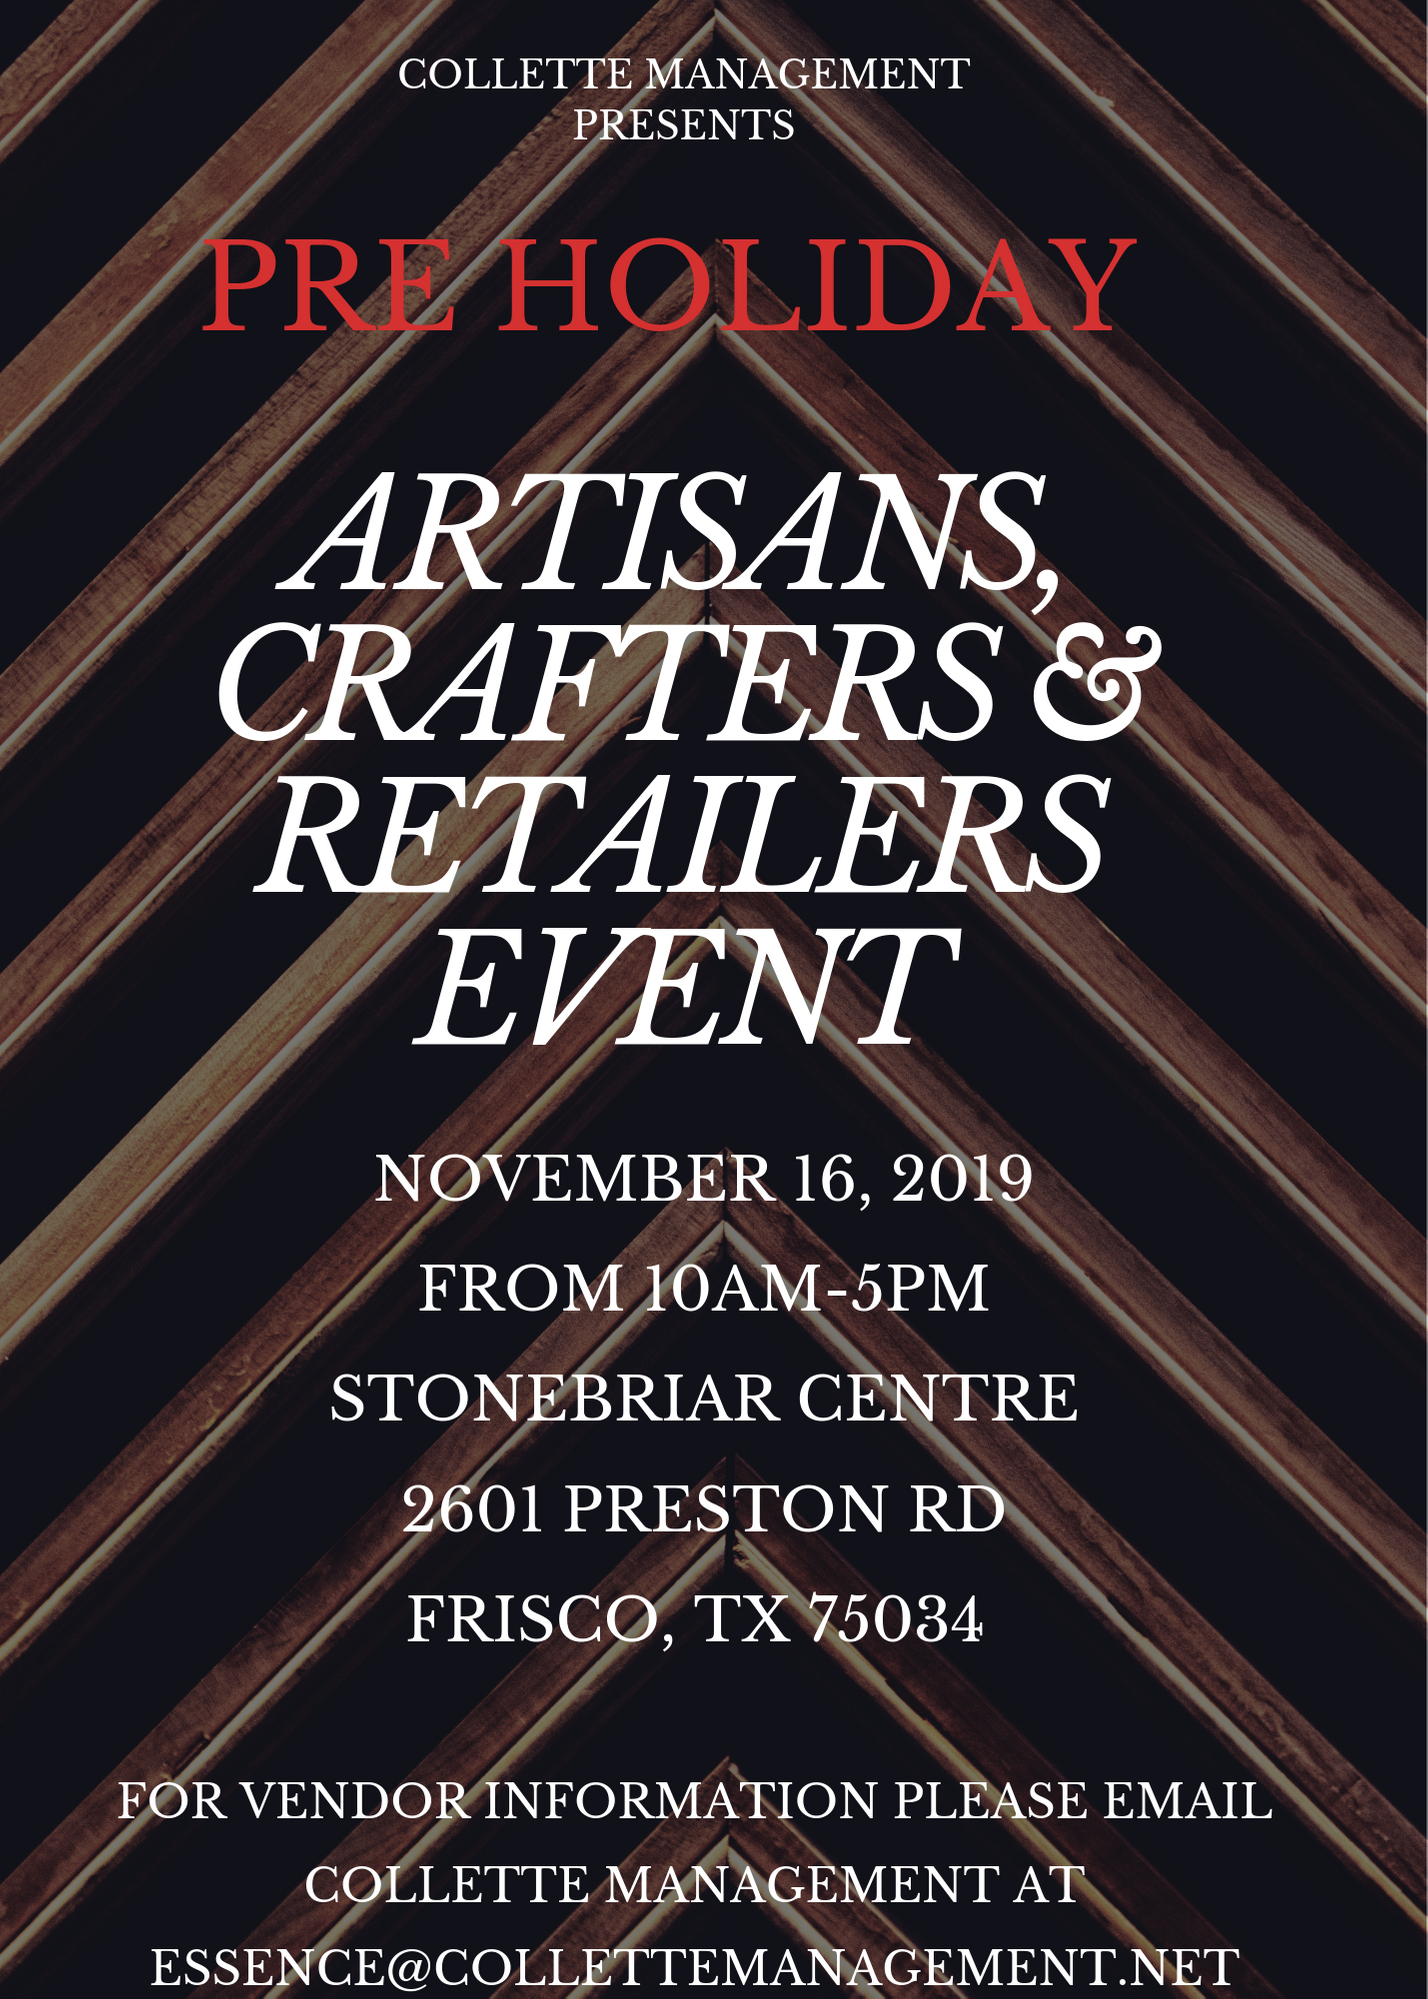 Artisans, Crafters & Retailers